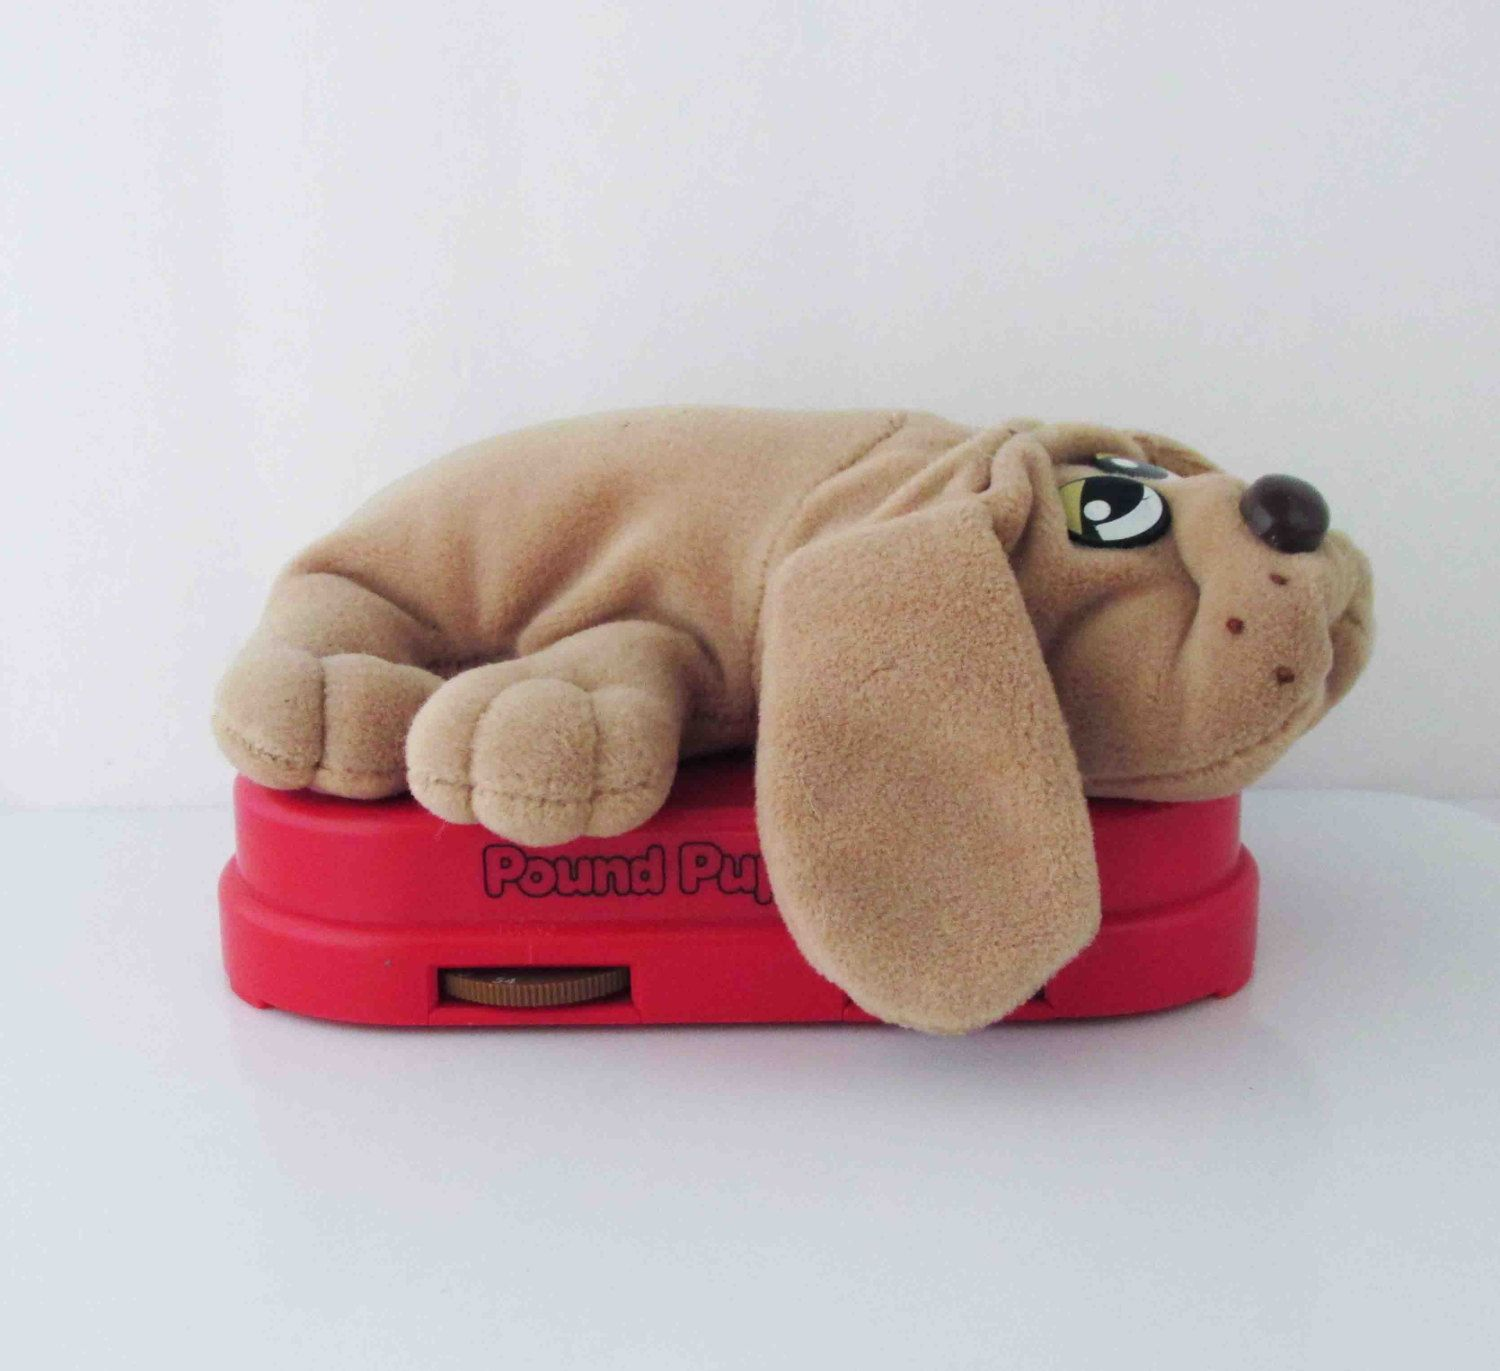 Pound Puppy Radio Plush Dog Toy 1980s Not Working